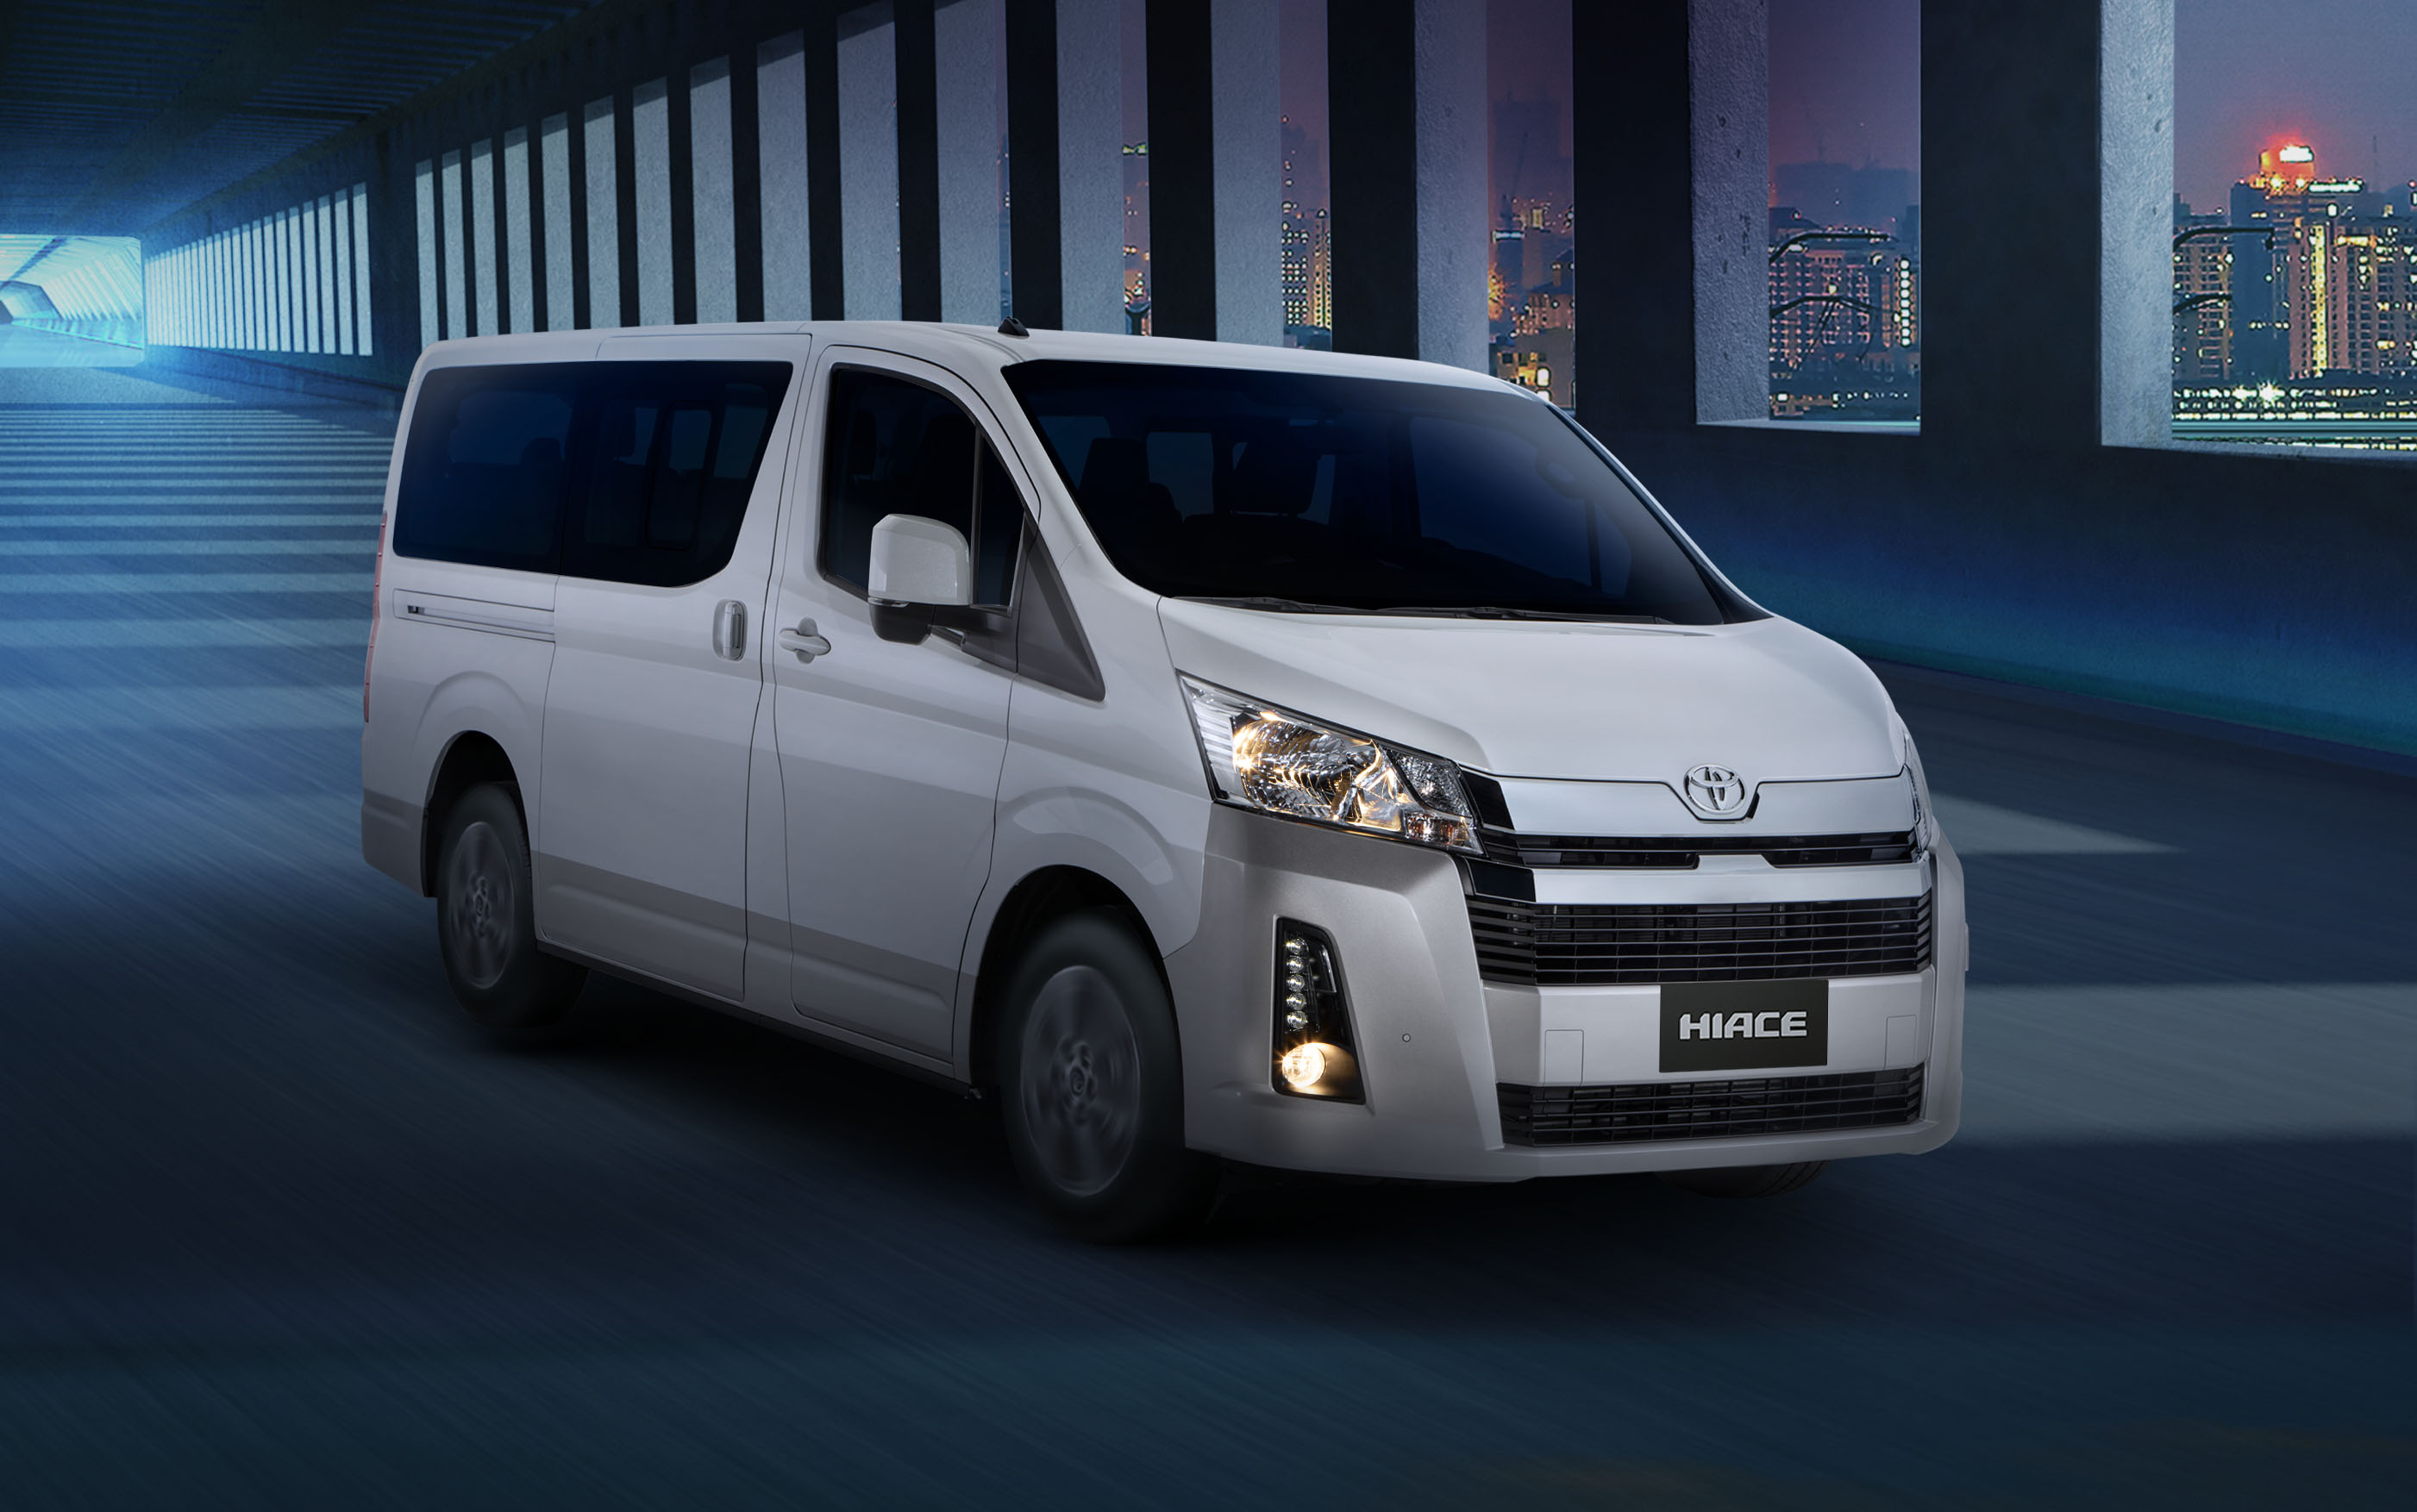 69ac6d4e49 The all-new Toyota Hiace continues to redefine how Filipinos live and travel